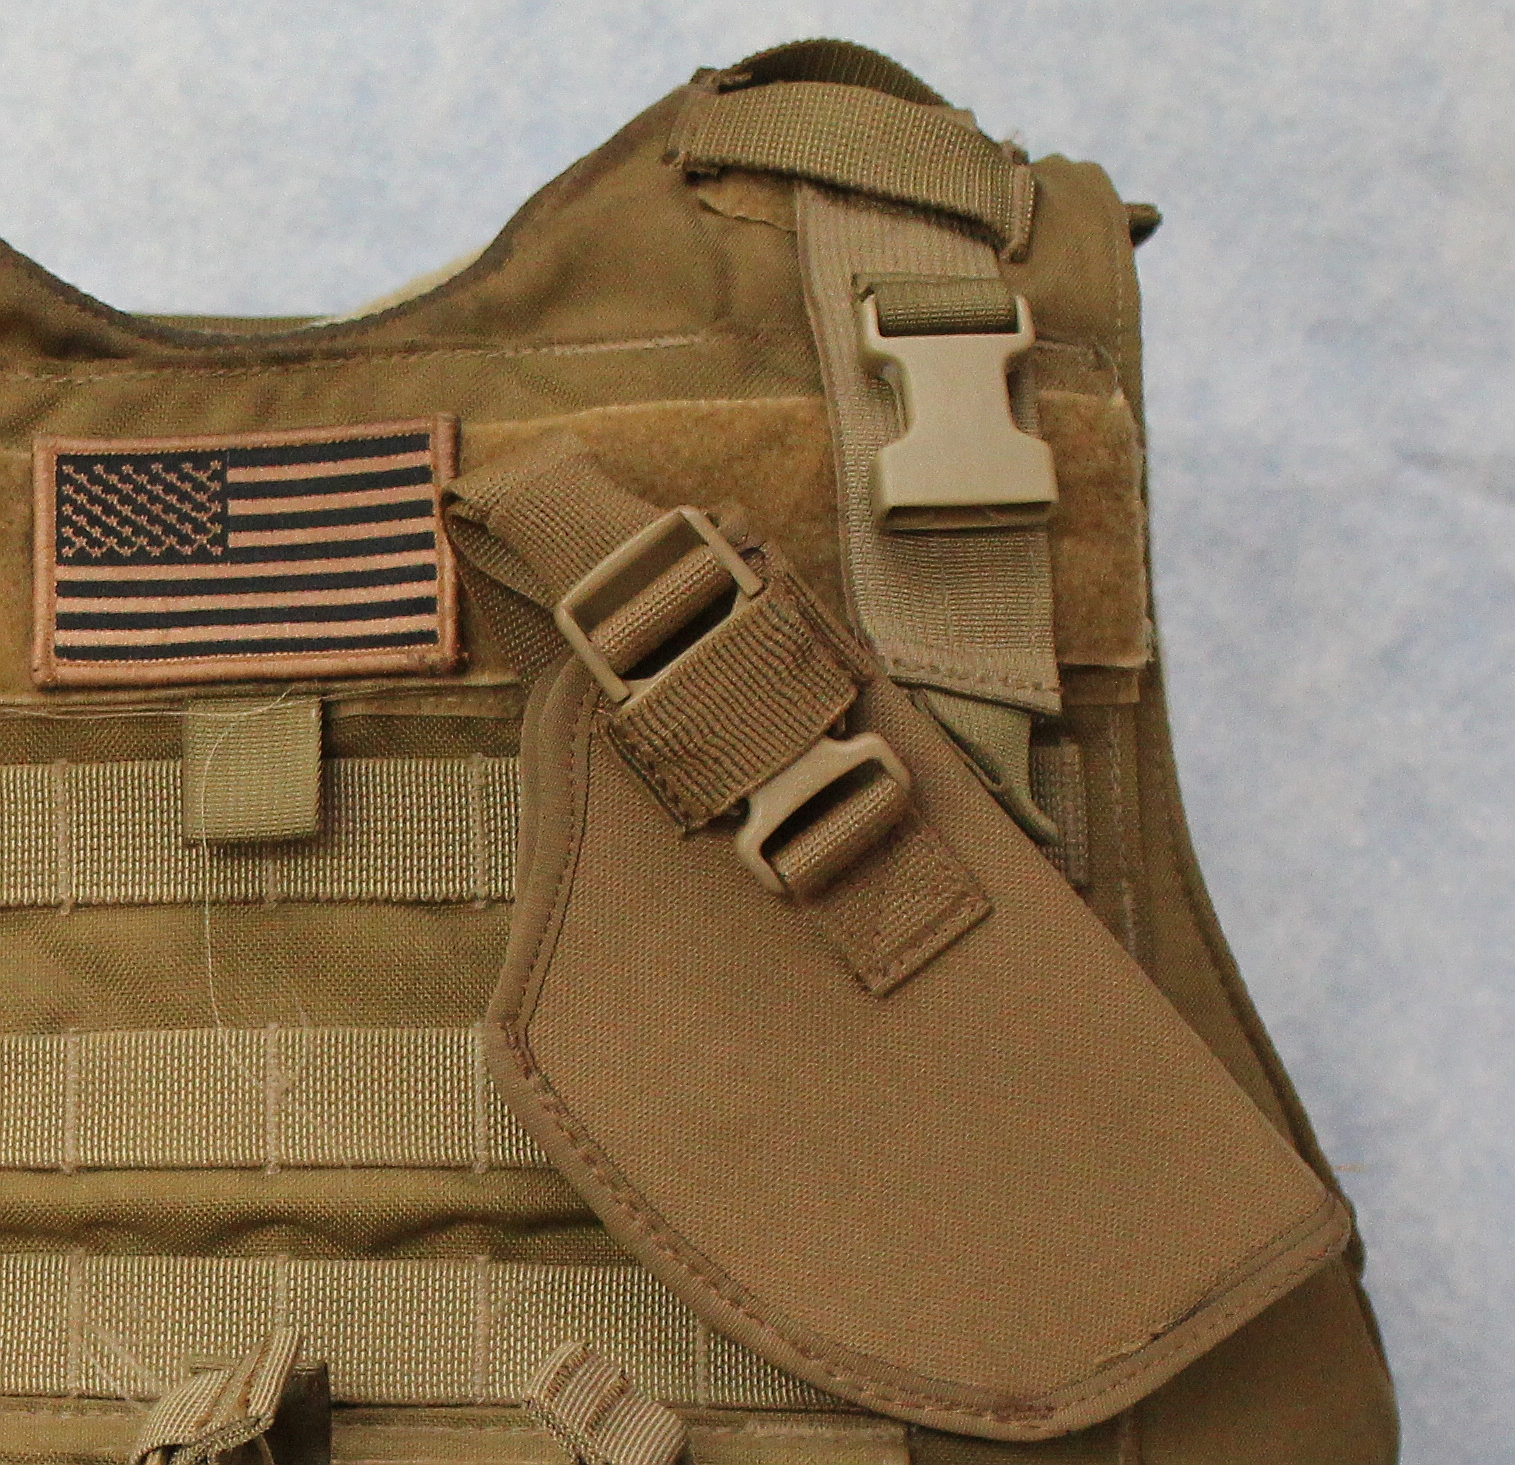 Raine Canted MOLLE Tactical Holster